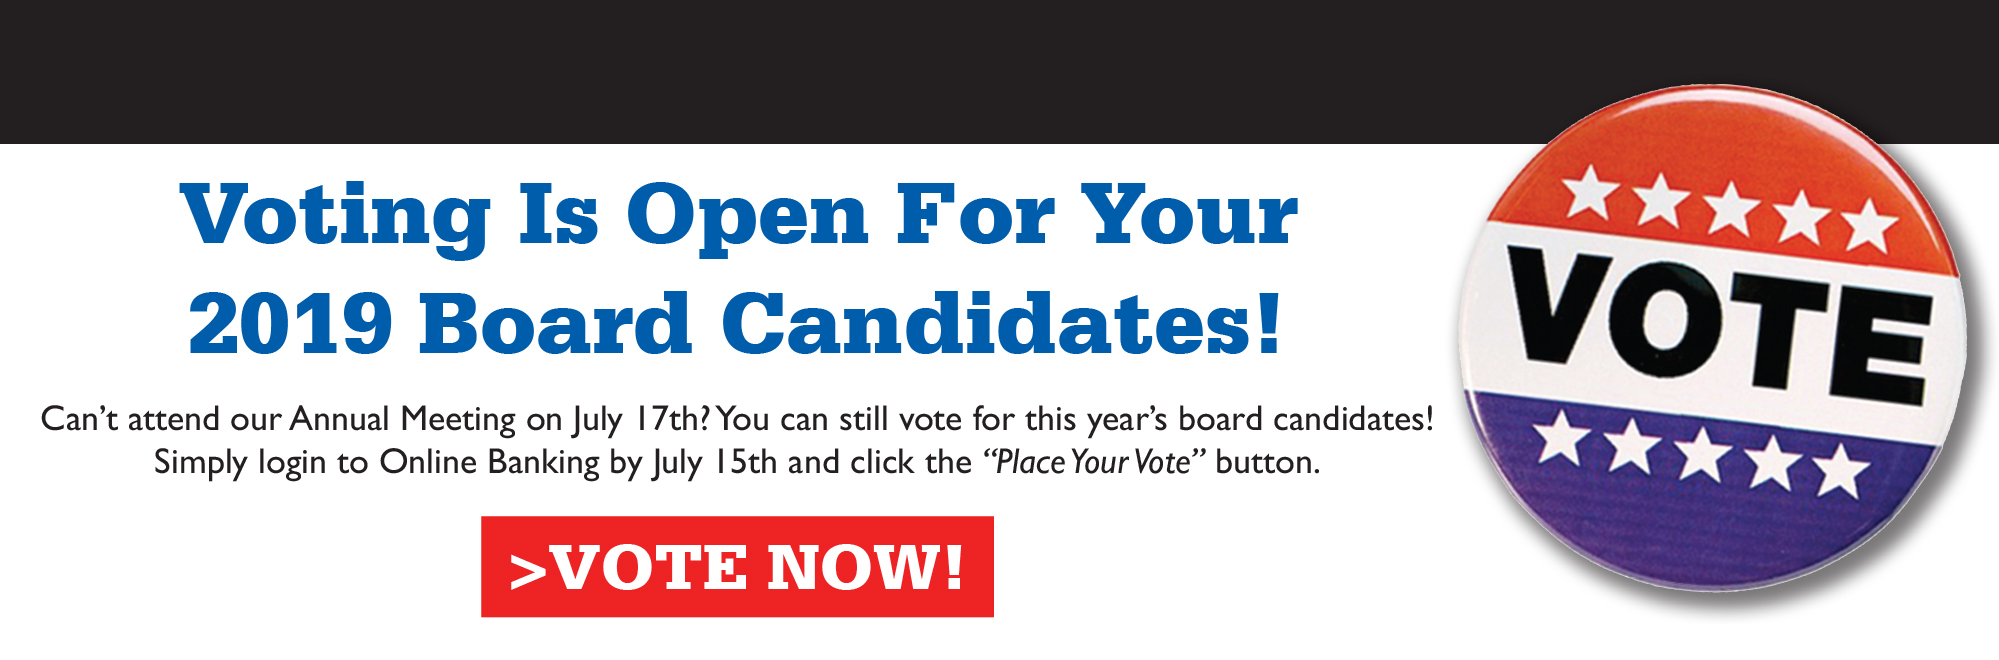 Vote by July 15th for your Board of Directors candidates!